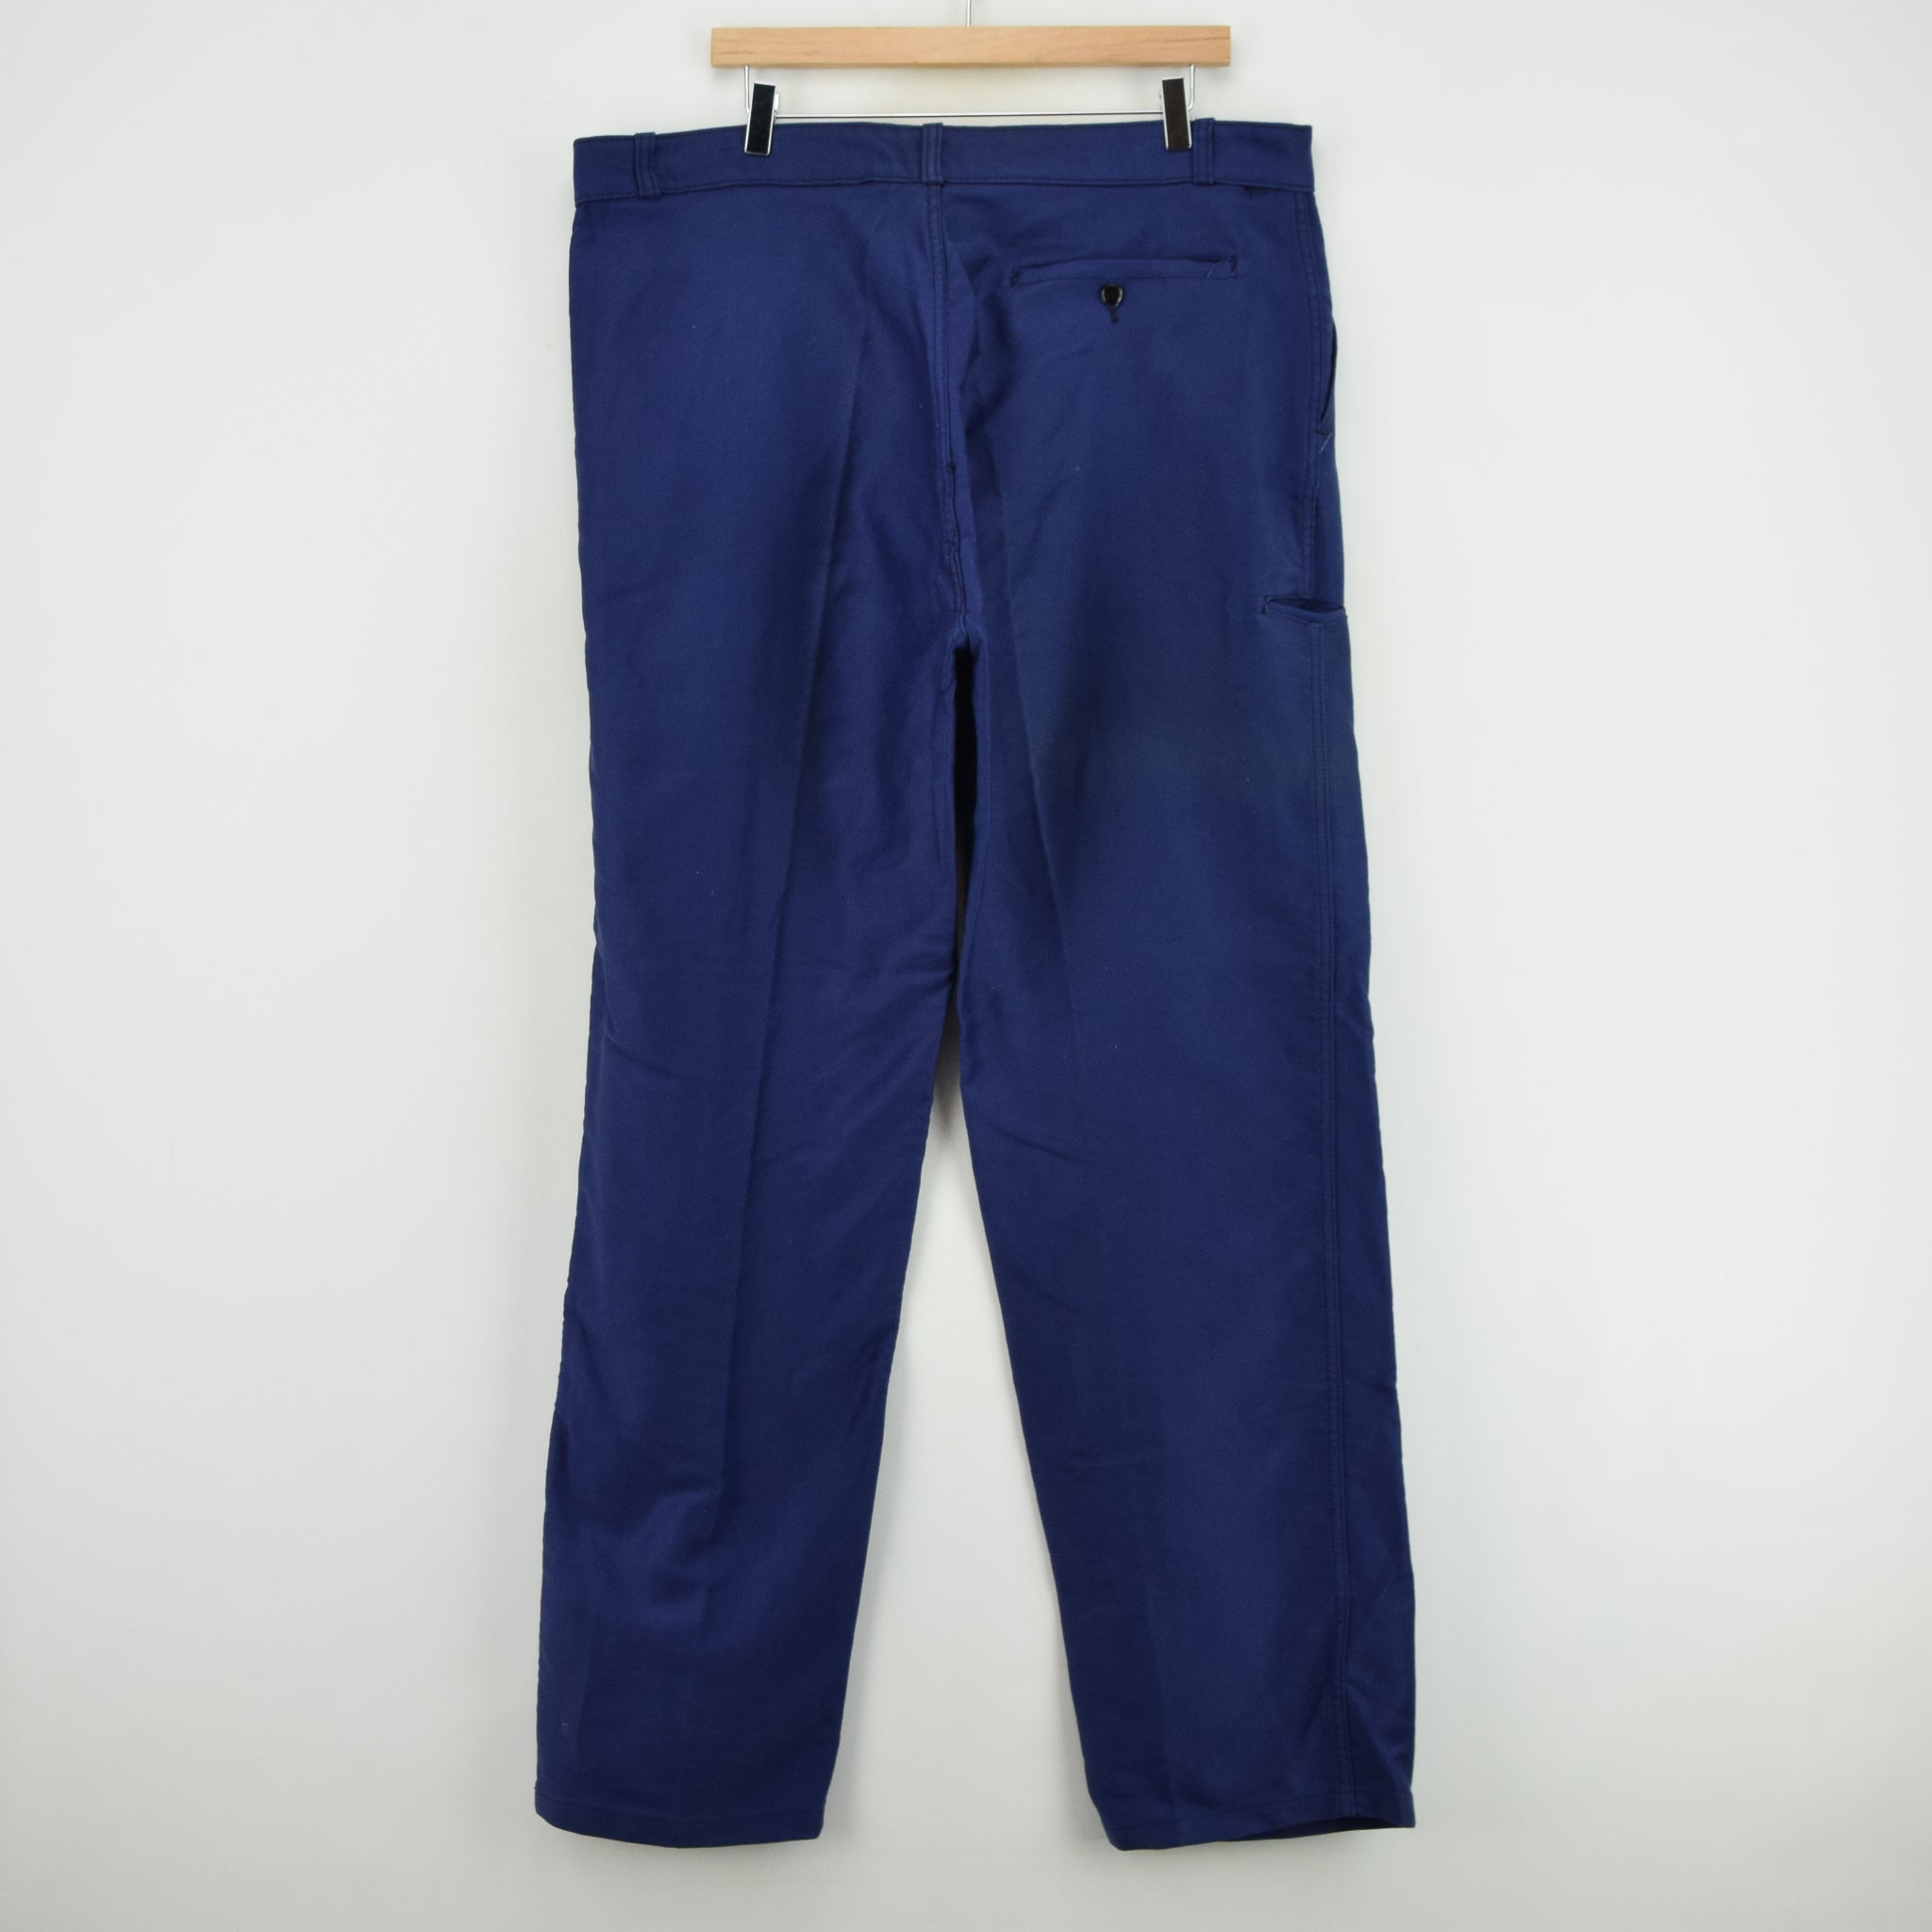 Vintage Adolphe Lafont Workwear Blue French Work Trousers 38 W 32 L back